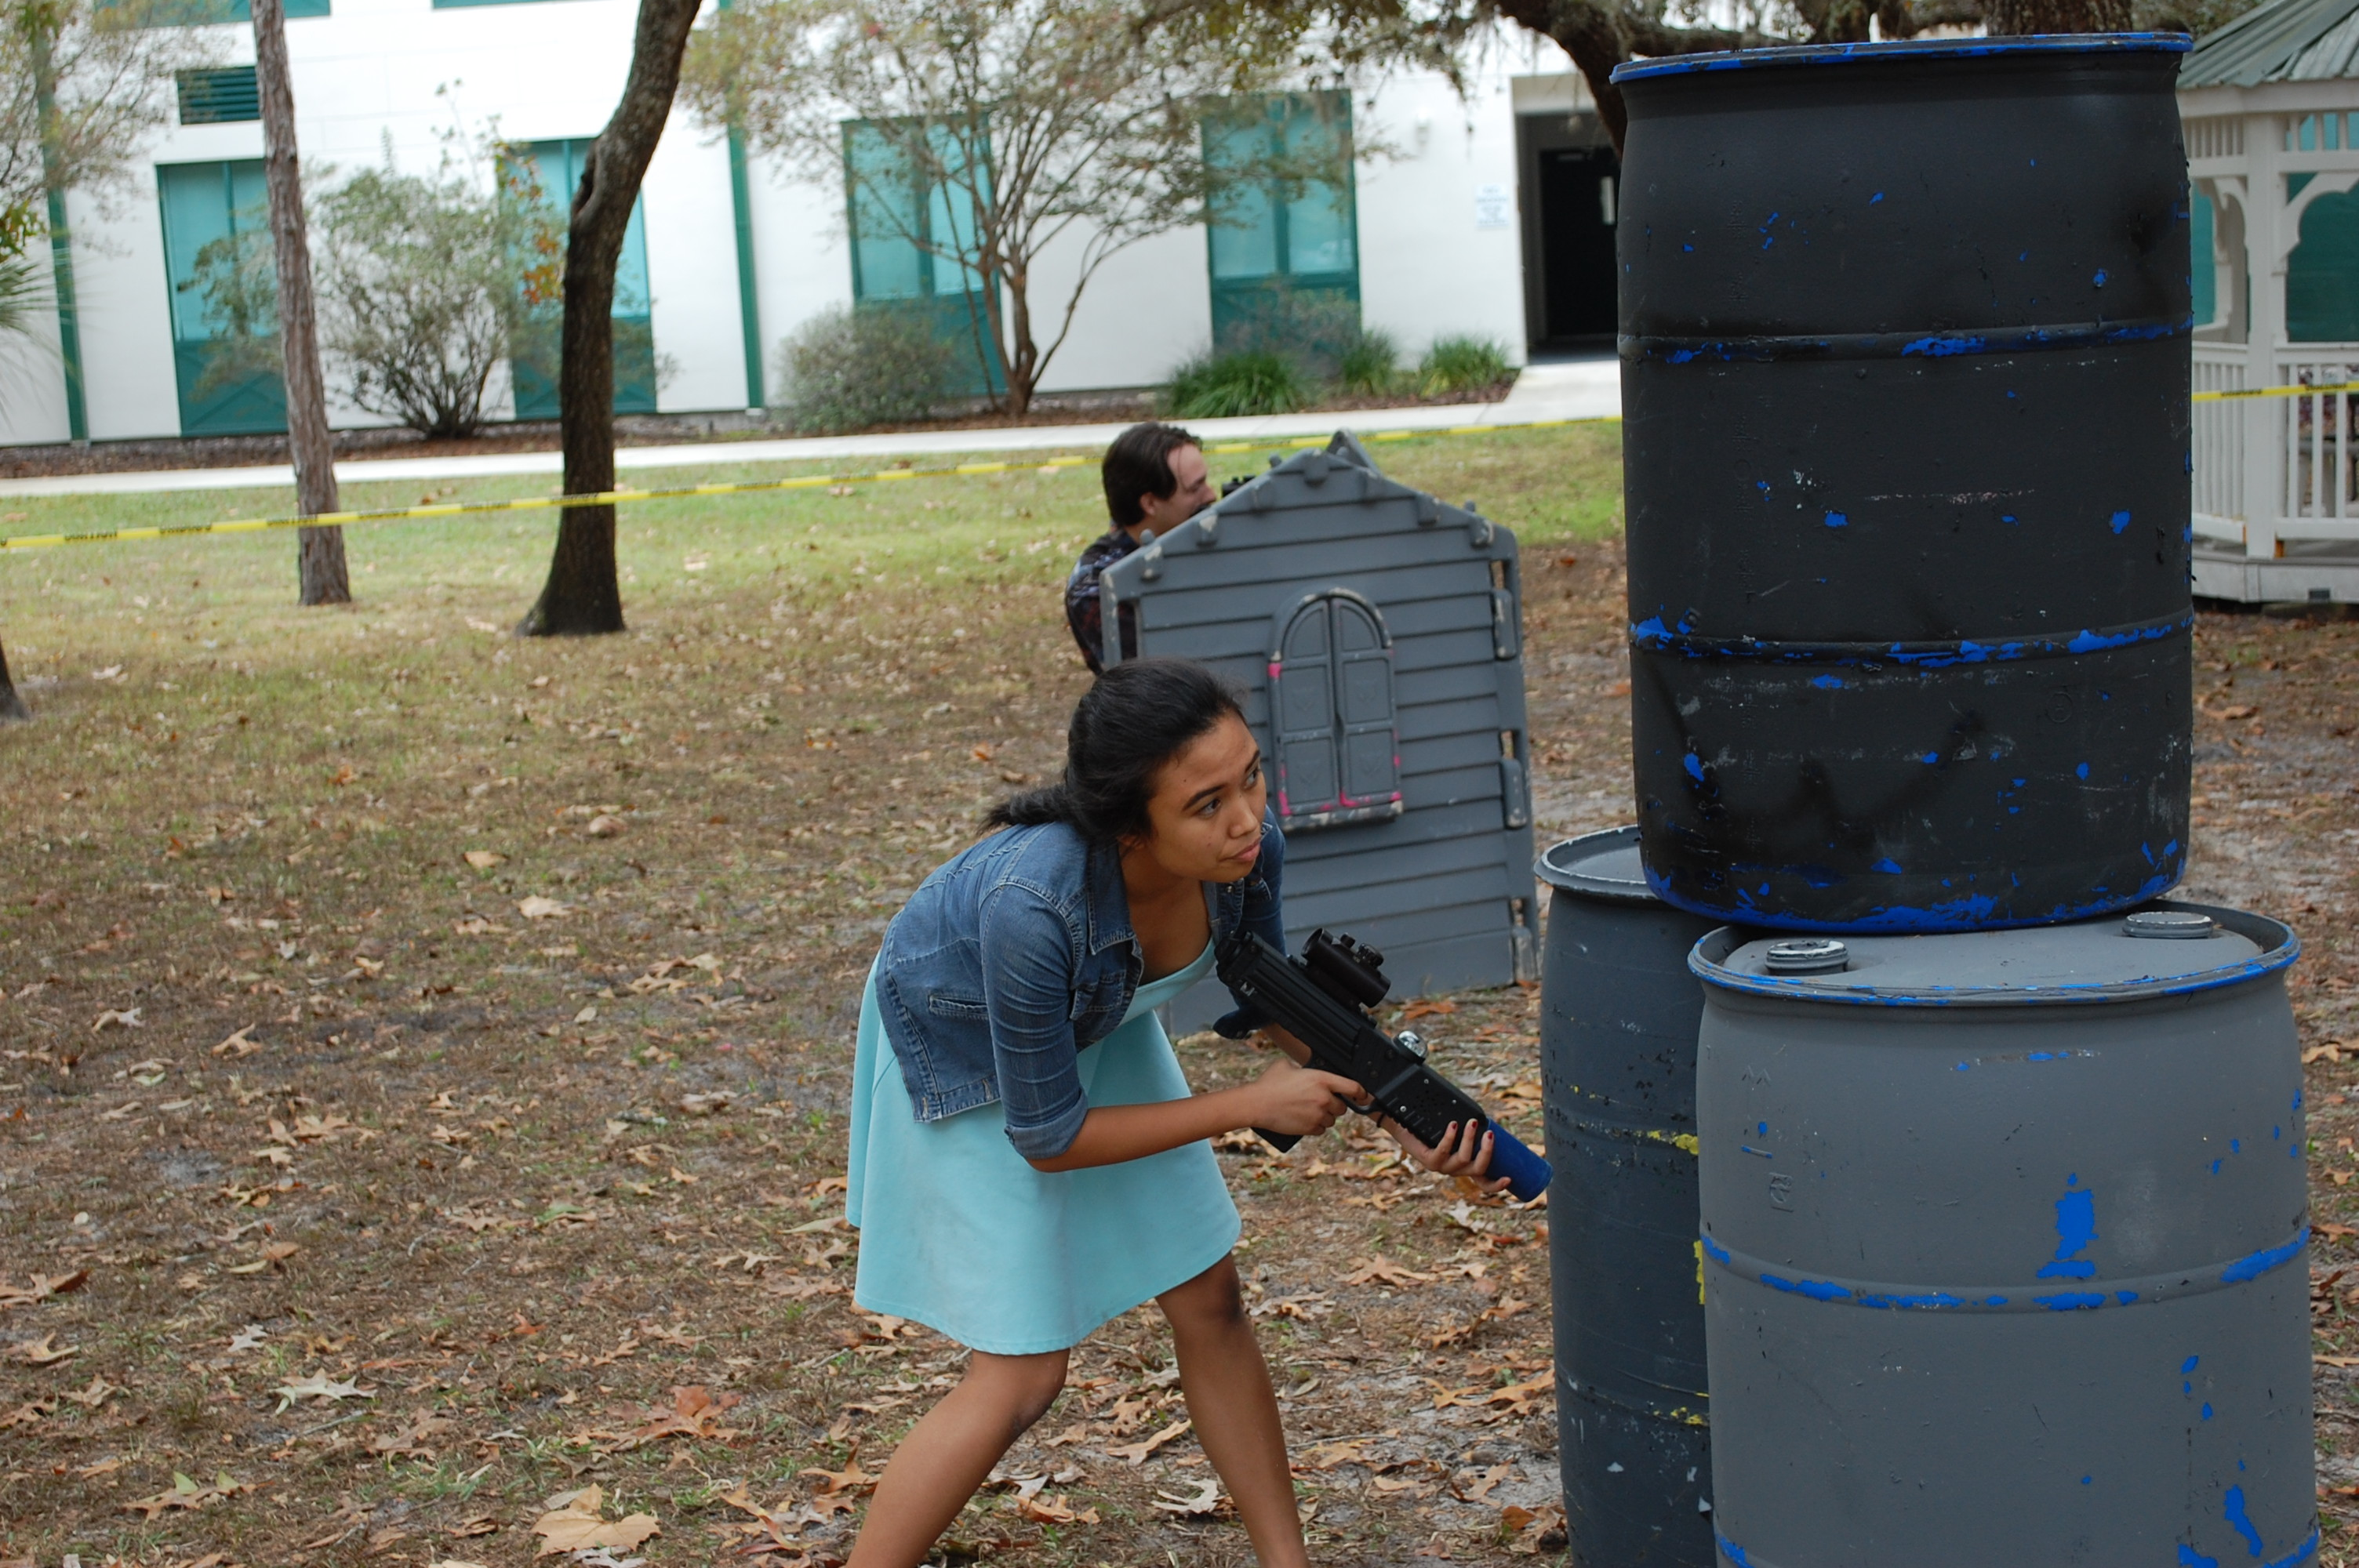 College Events in Florida - Stealth Mobile Laser Tag (68)